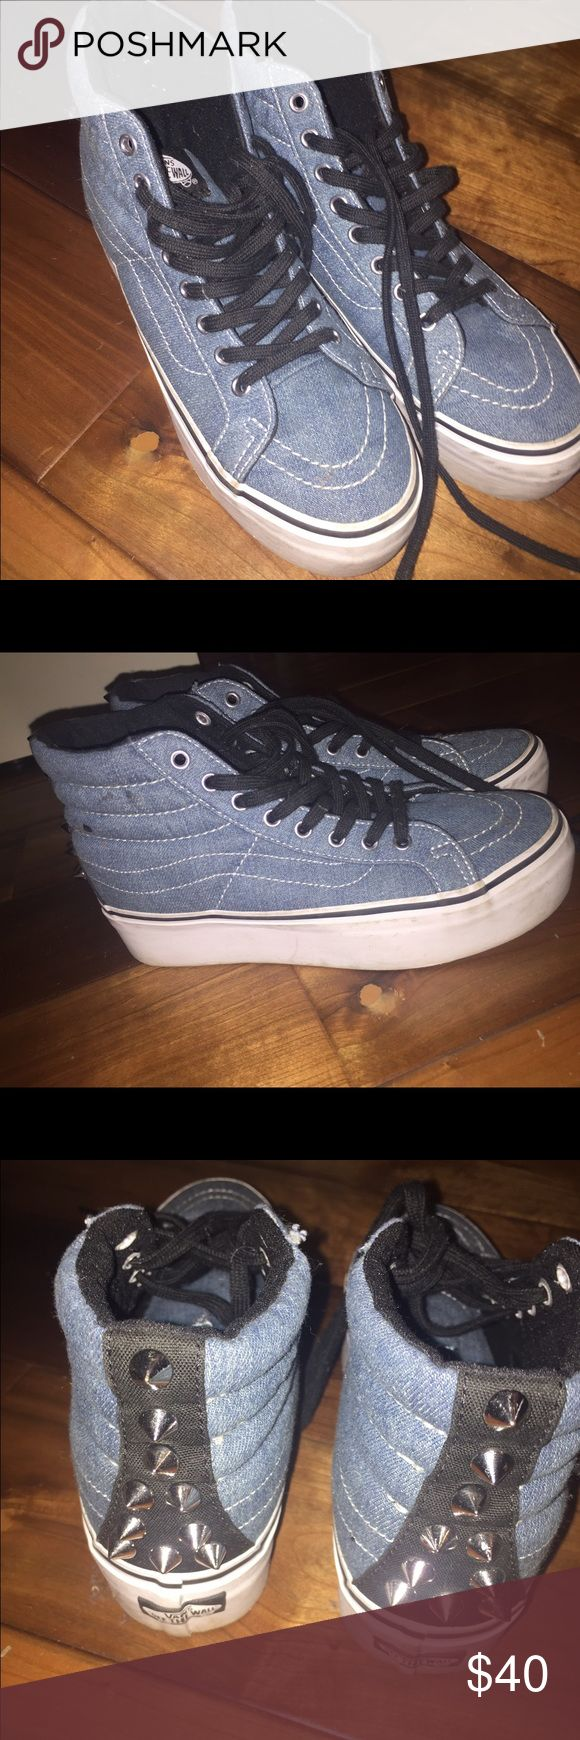 platform denim studded vans high tops love these to add a little height and the denim and black combo makes them a great item to match any outfit size 6 women! super cute studs! almost new--worn once Vans Shoes Sneakers